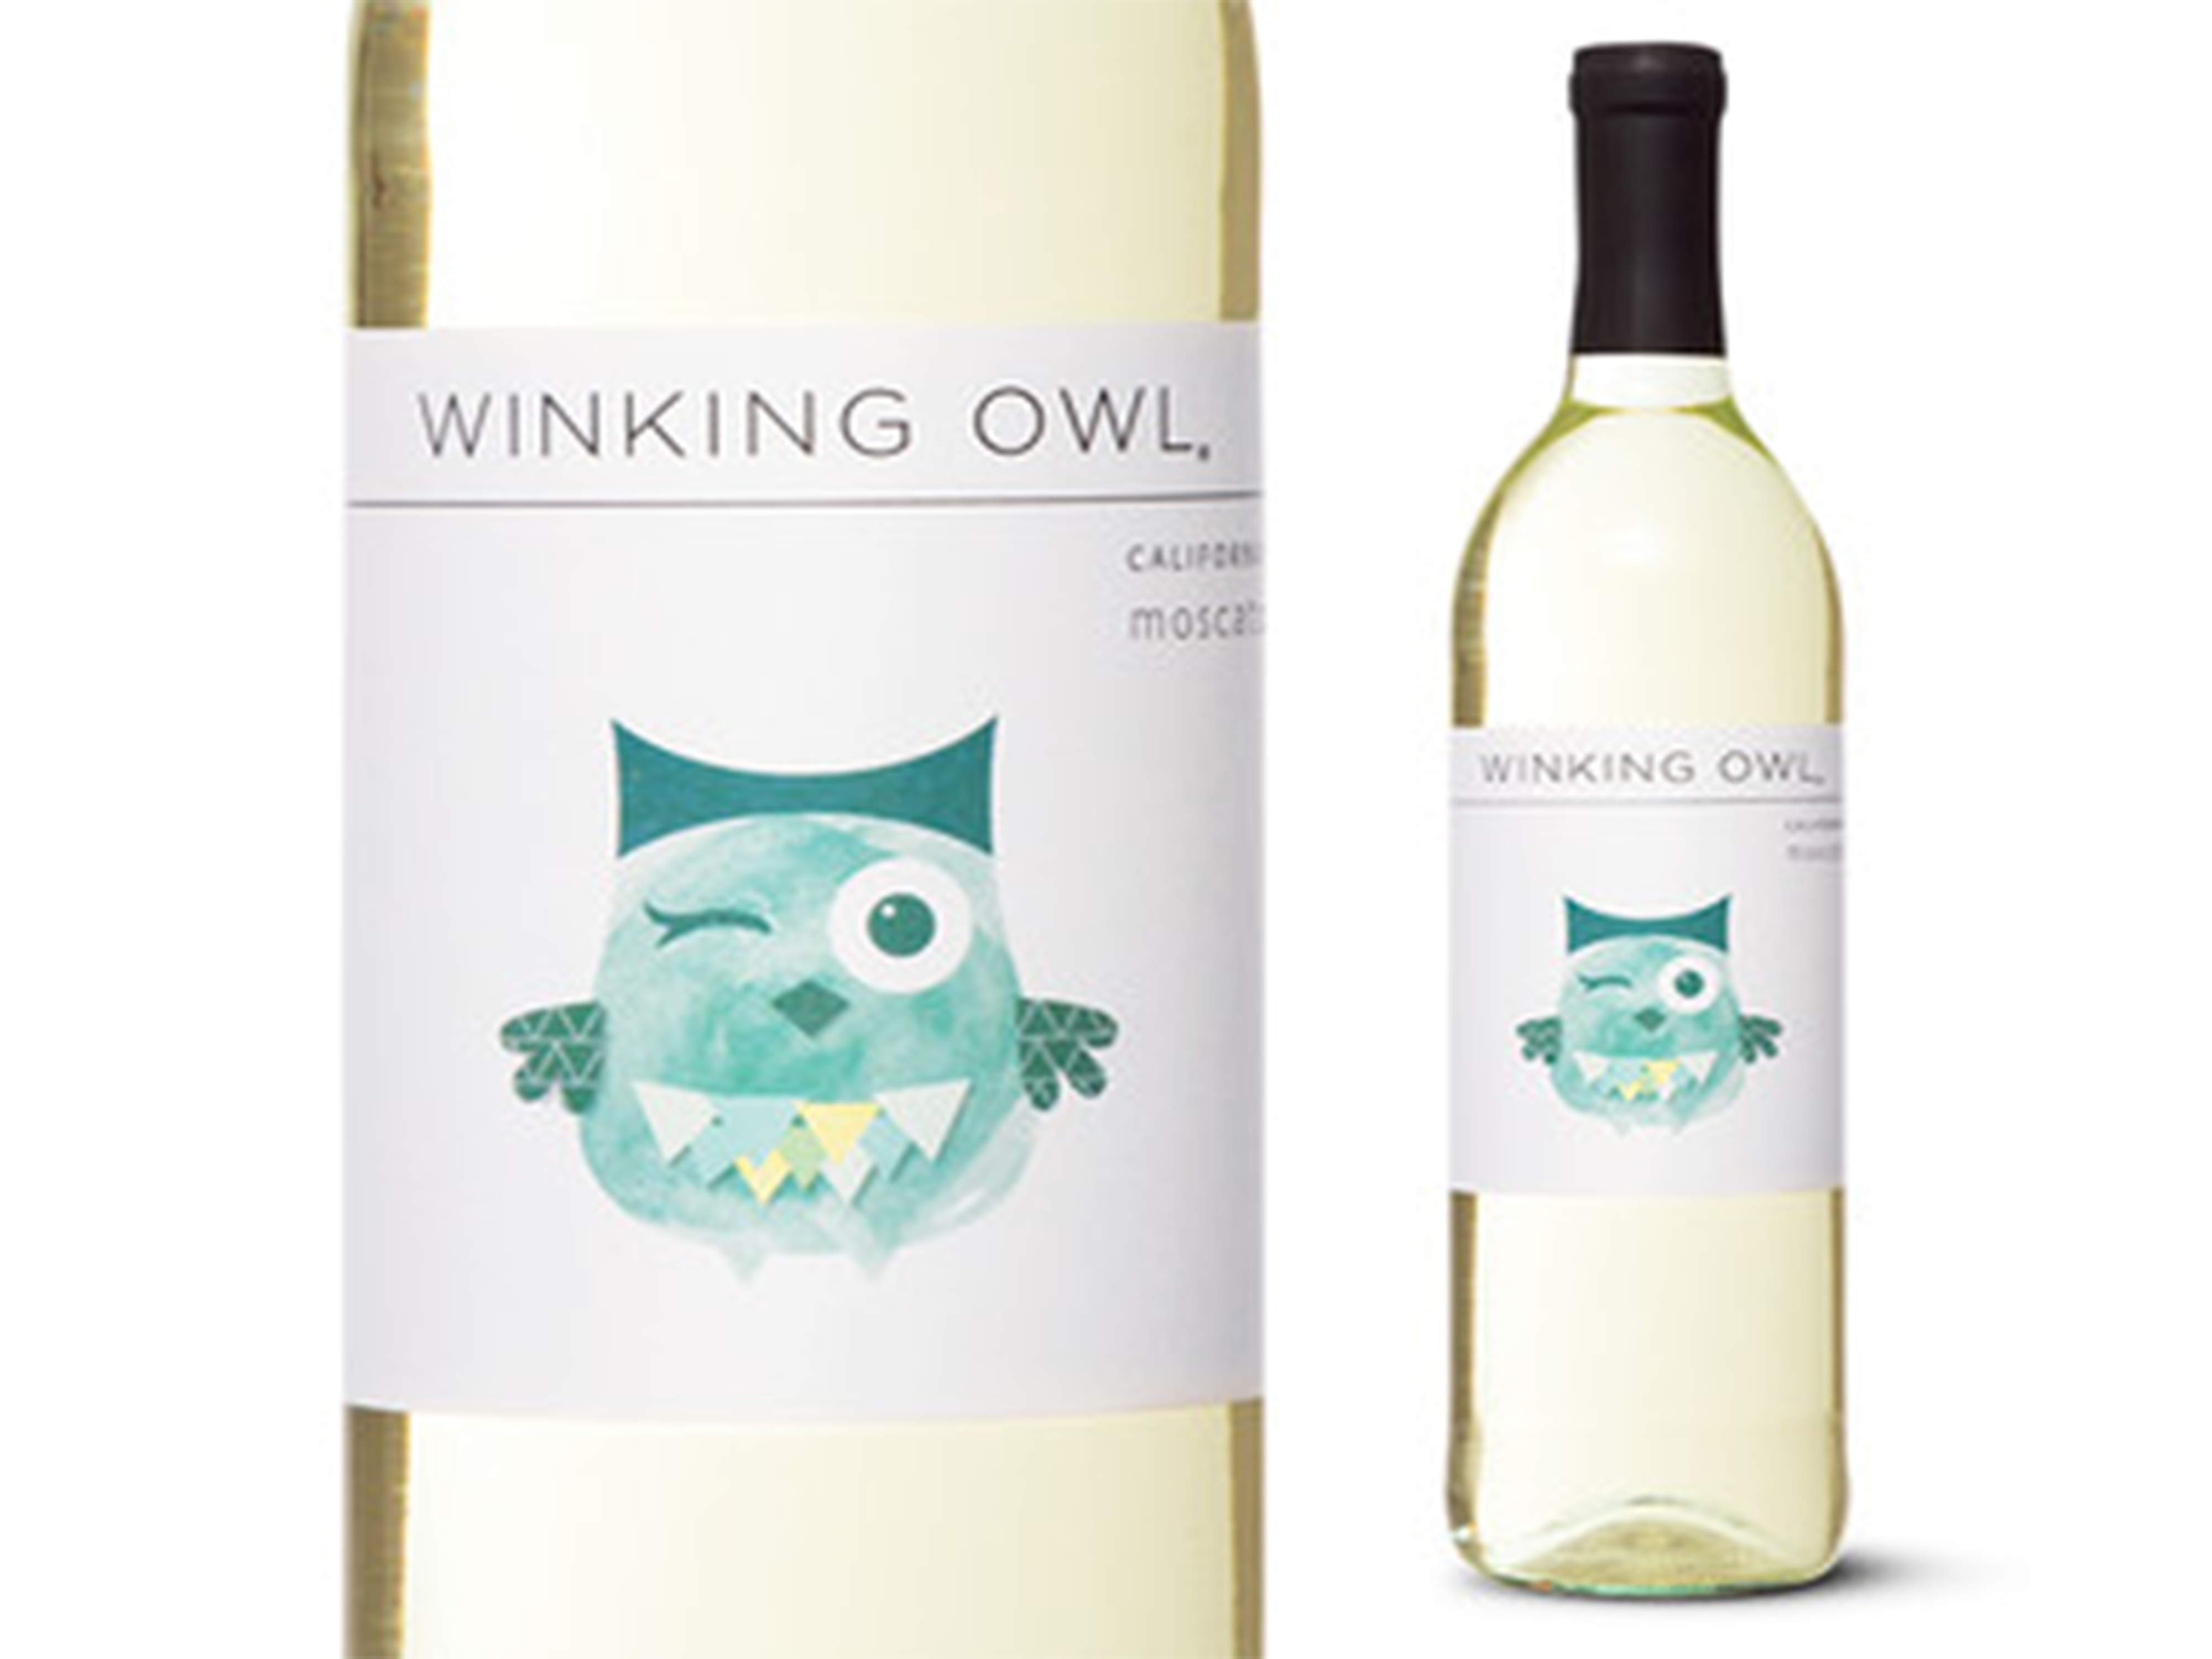 Favorite Alcohol: Winking Owl Moscato